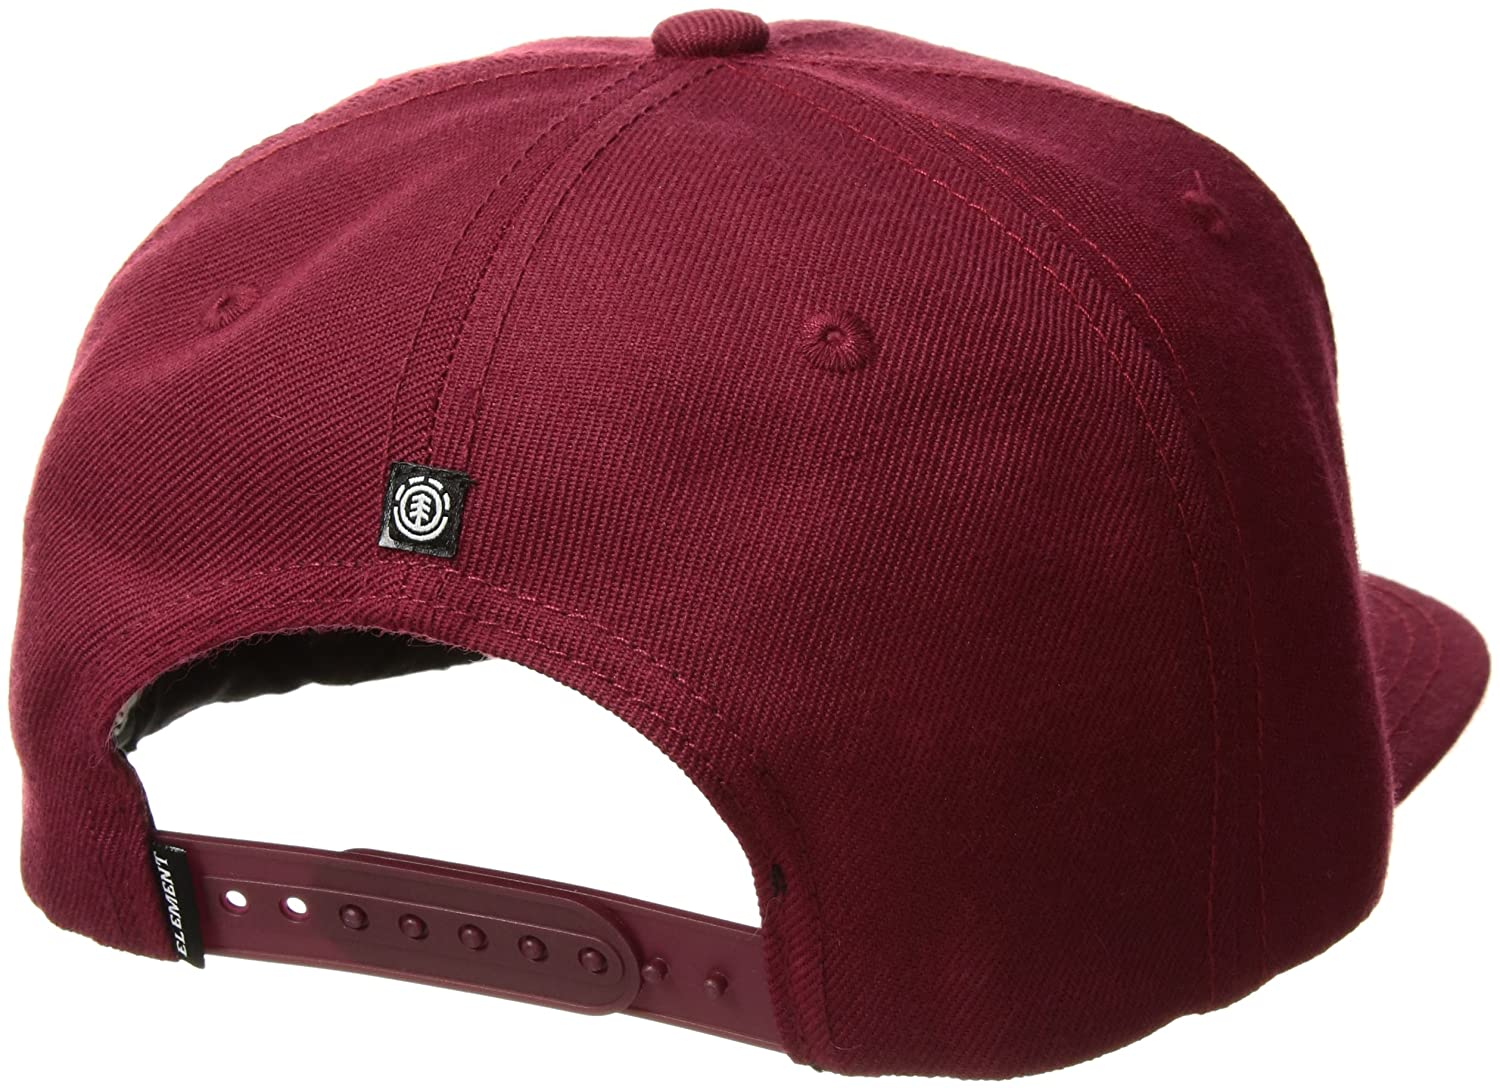 Element 19924 Element - Gorra para hombre United a hombre Red 8187169 -  airporthotels.review 01e4caeed40